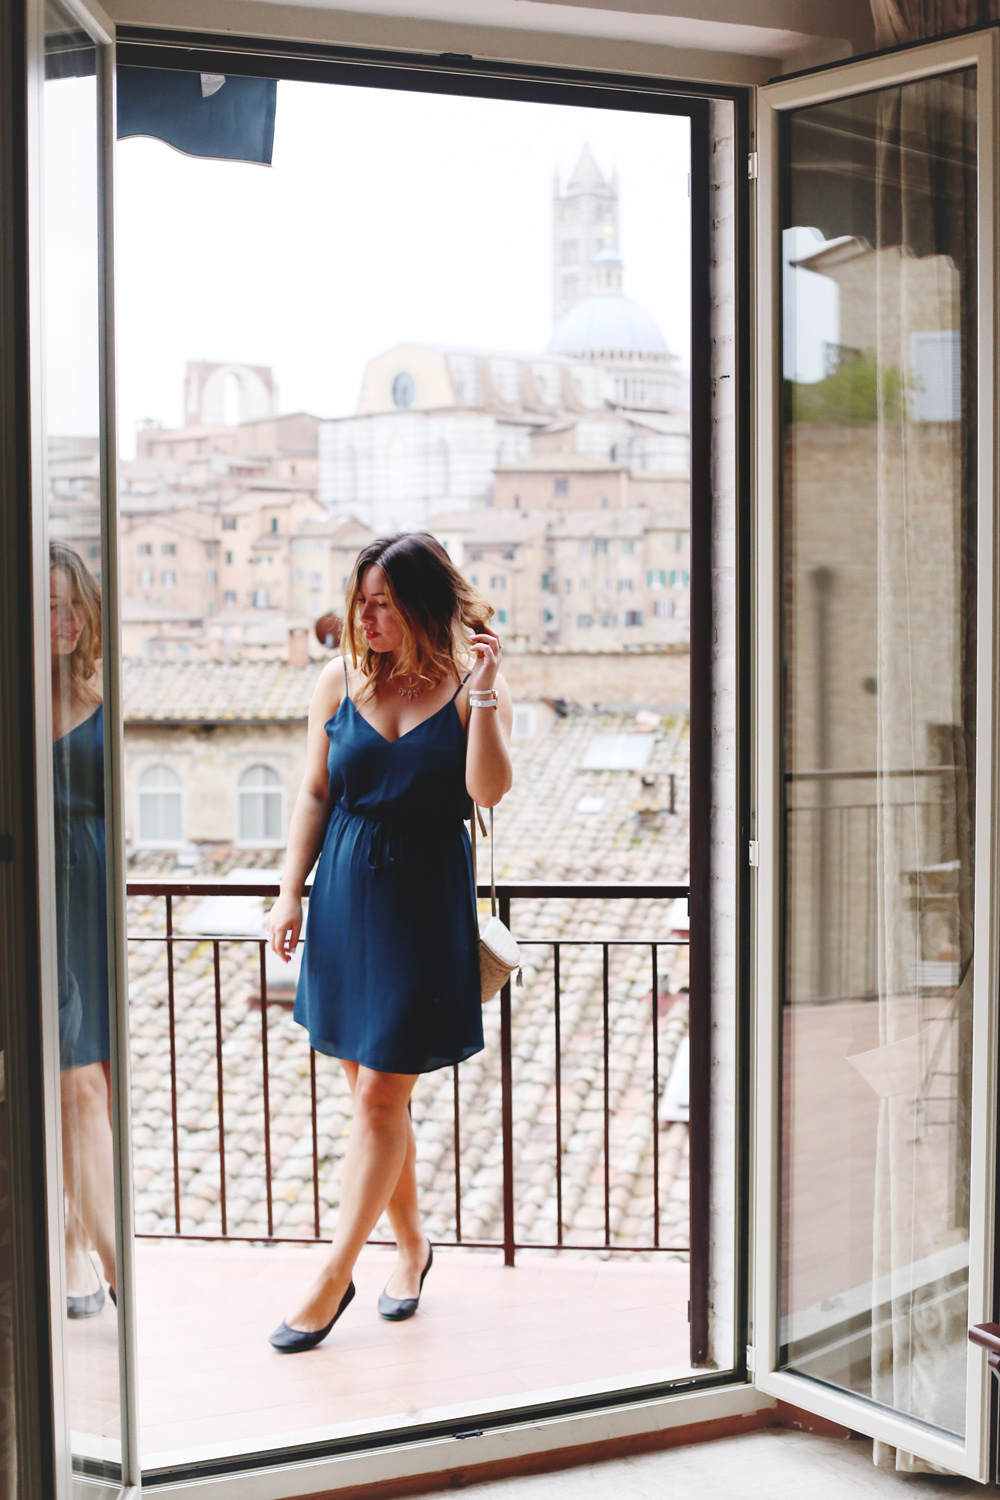 To Vogue or Bust shares jewelry stacking tips in Swarovski jewelry, Aritzia silk dress, Tieks flats and vintage Bottega Venata bag in Siena, Italy